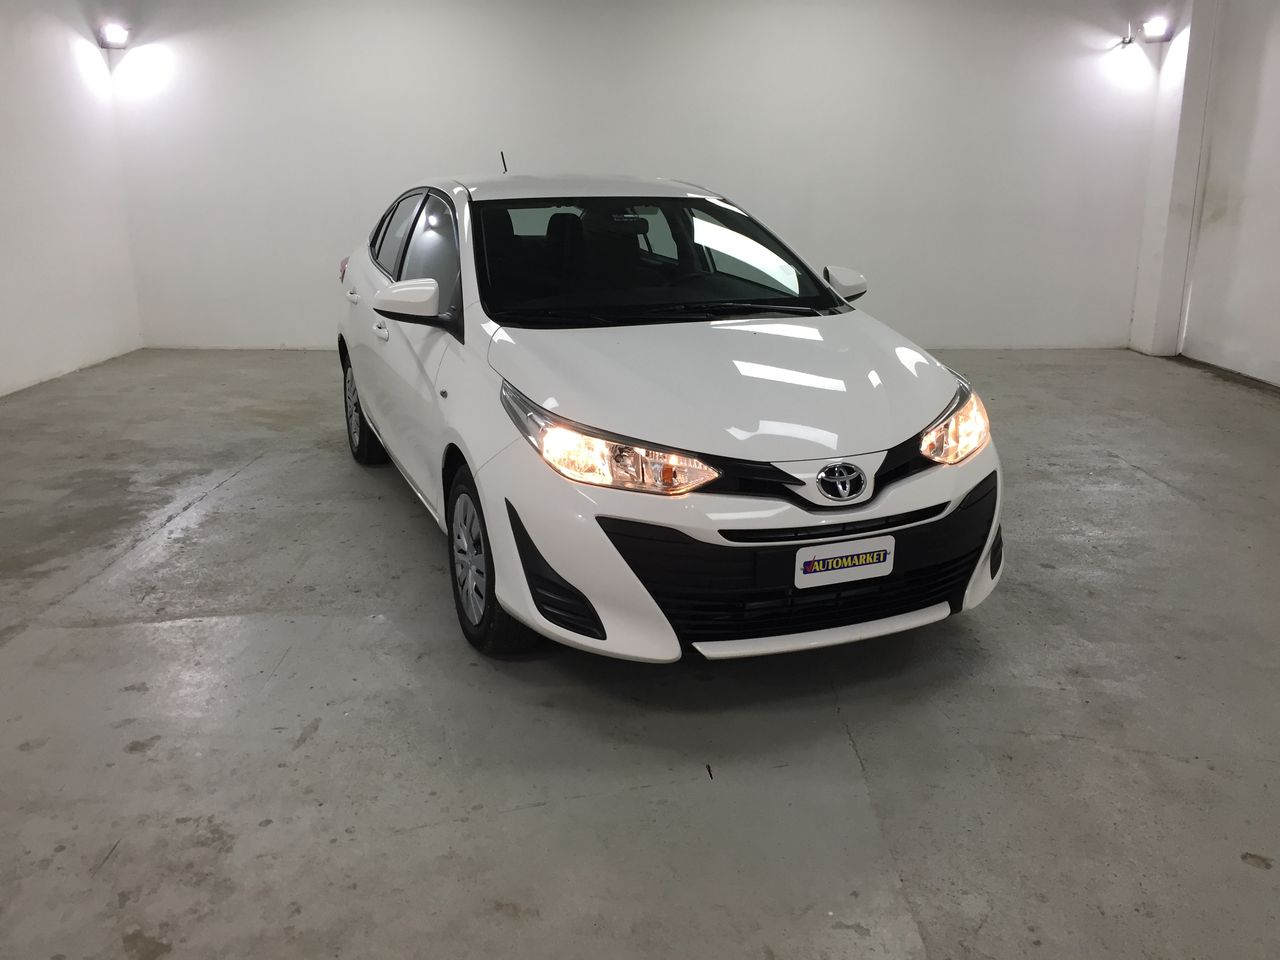 TOYOTA YARIS SUPER WHITE II 2018 CL6486